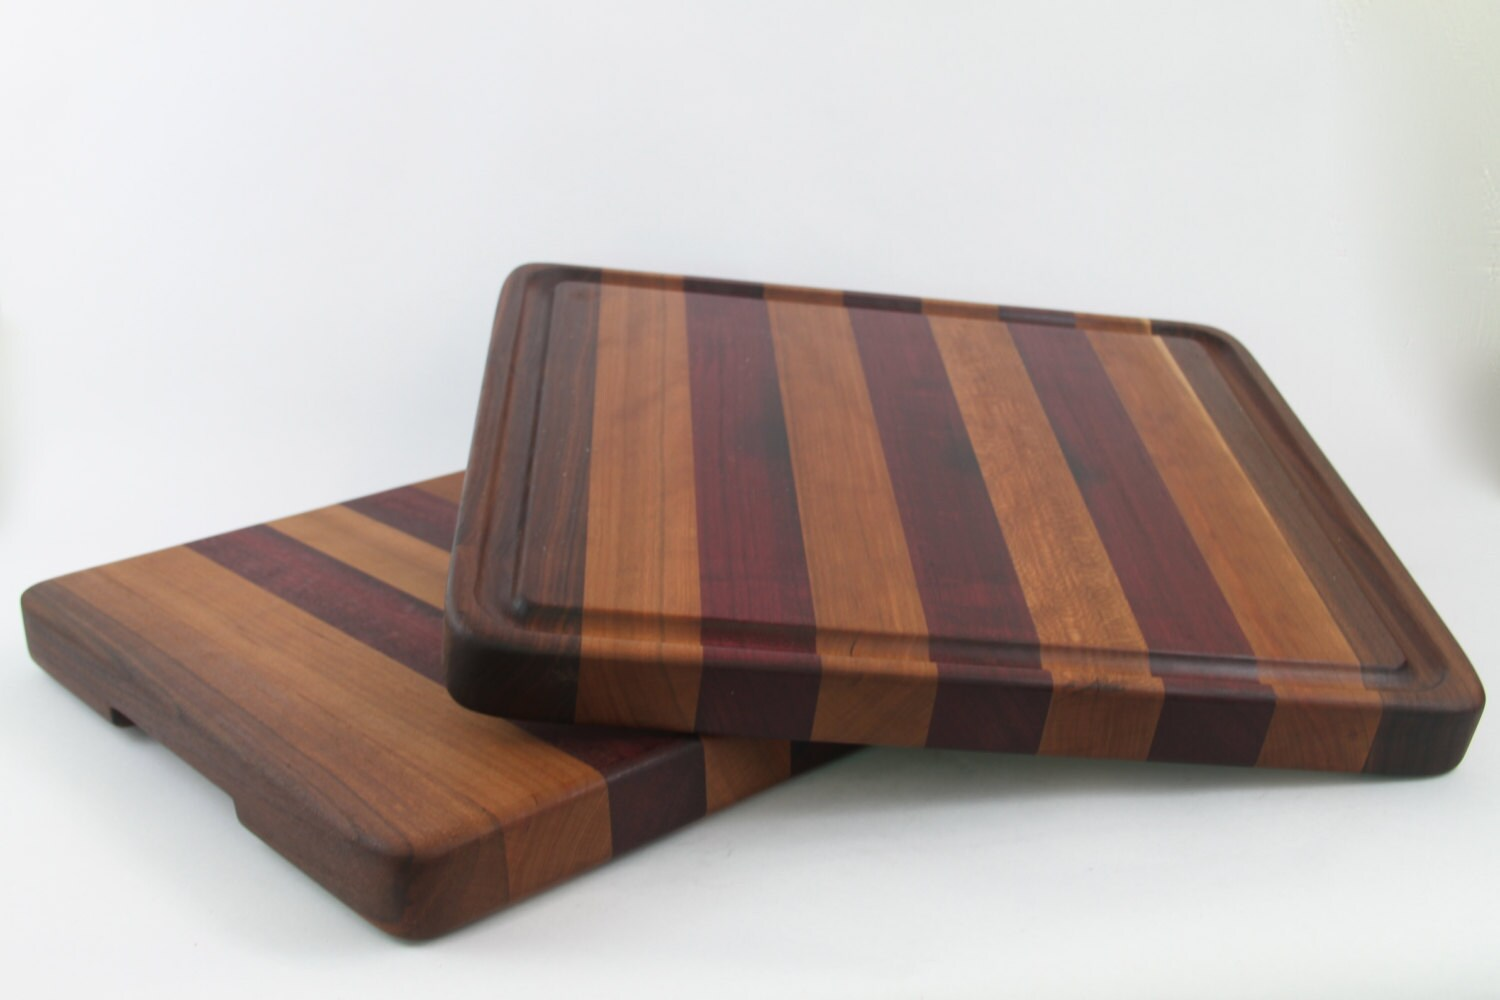 Handcrafted wood cutting board edge grain cherry purple